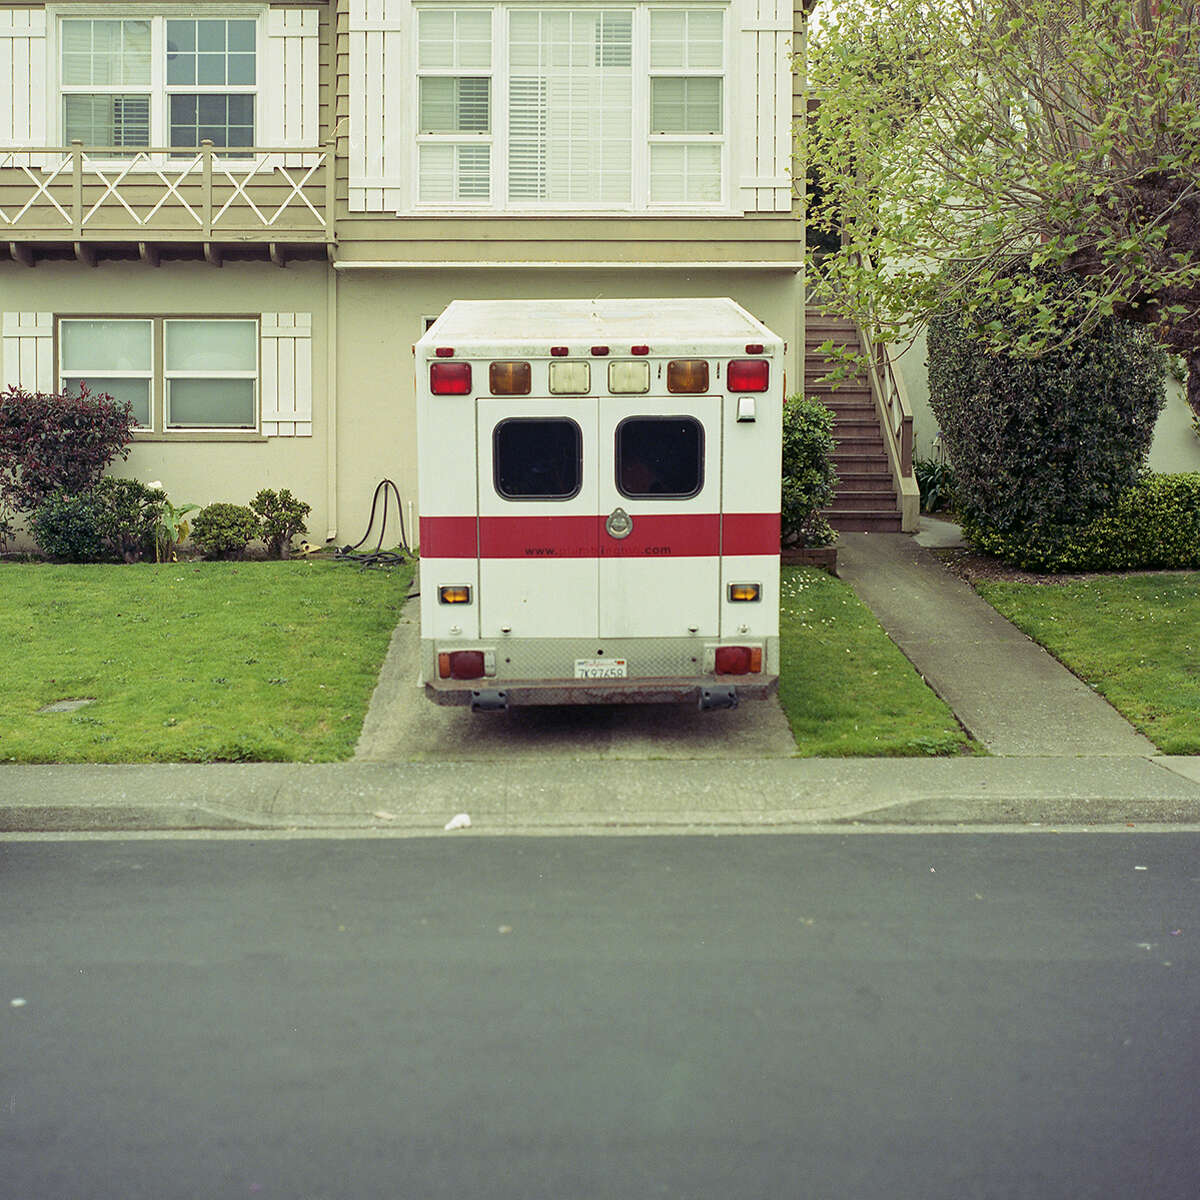 Parked emergency. [Bronica S2   Kodak Portra 800] Photographer Mariano Rossetti only uses analog film cameras for the photographs on his Instagram page:Foto.Rossetti